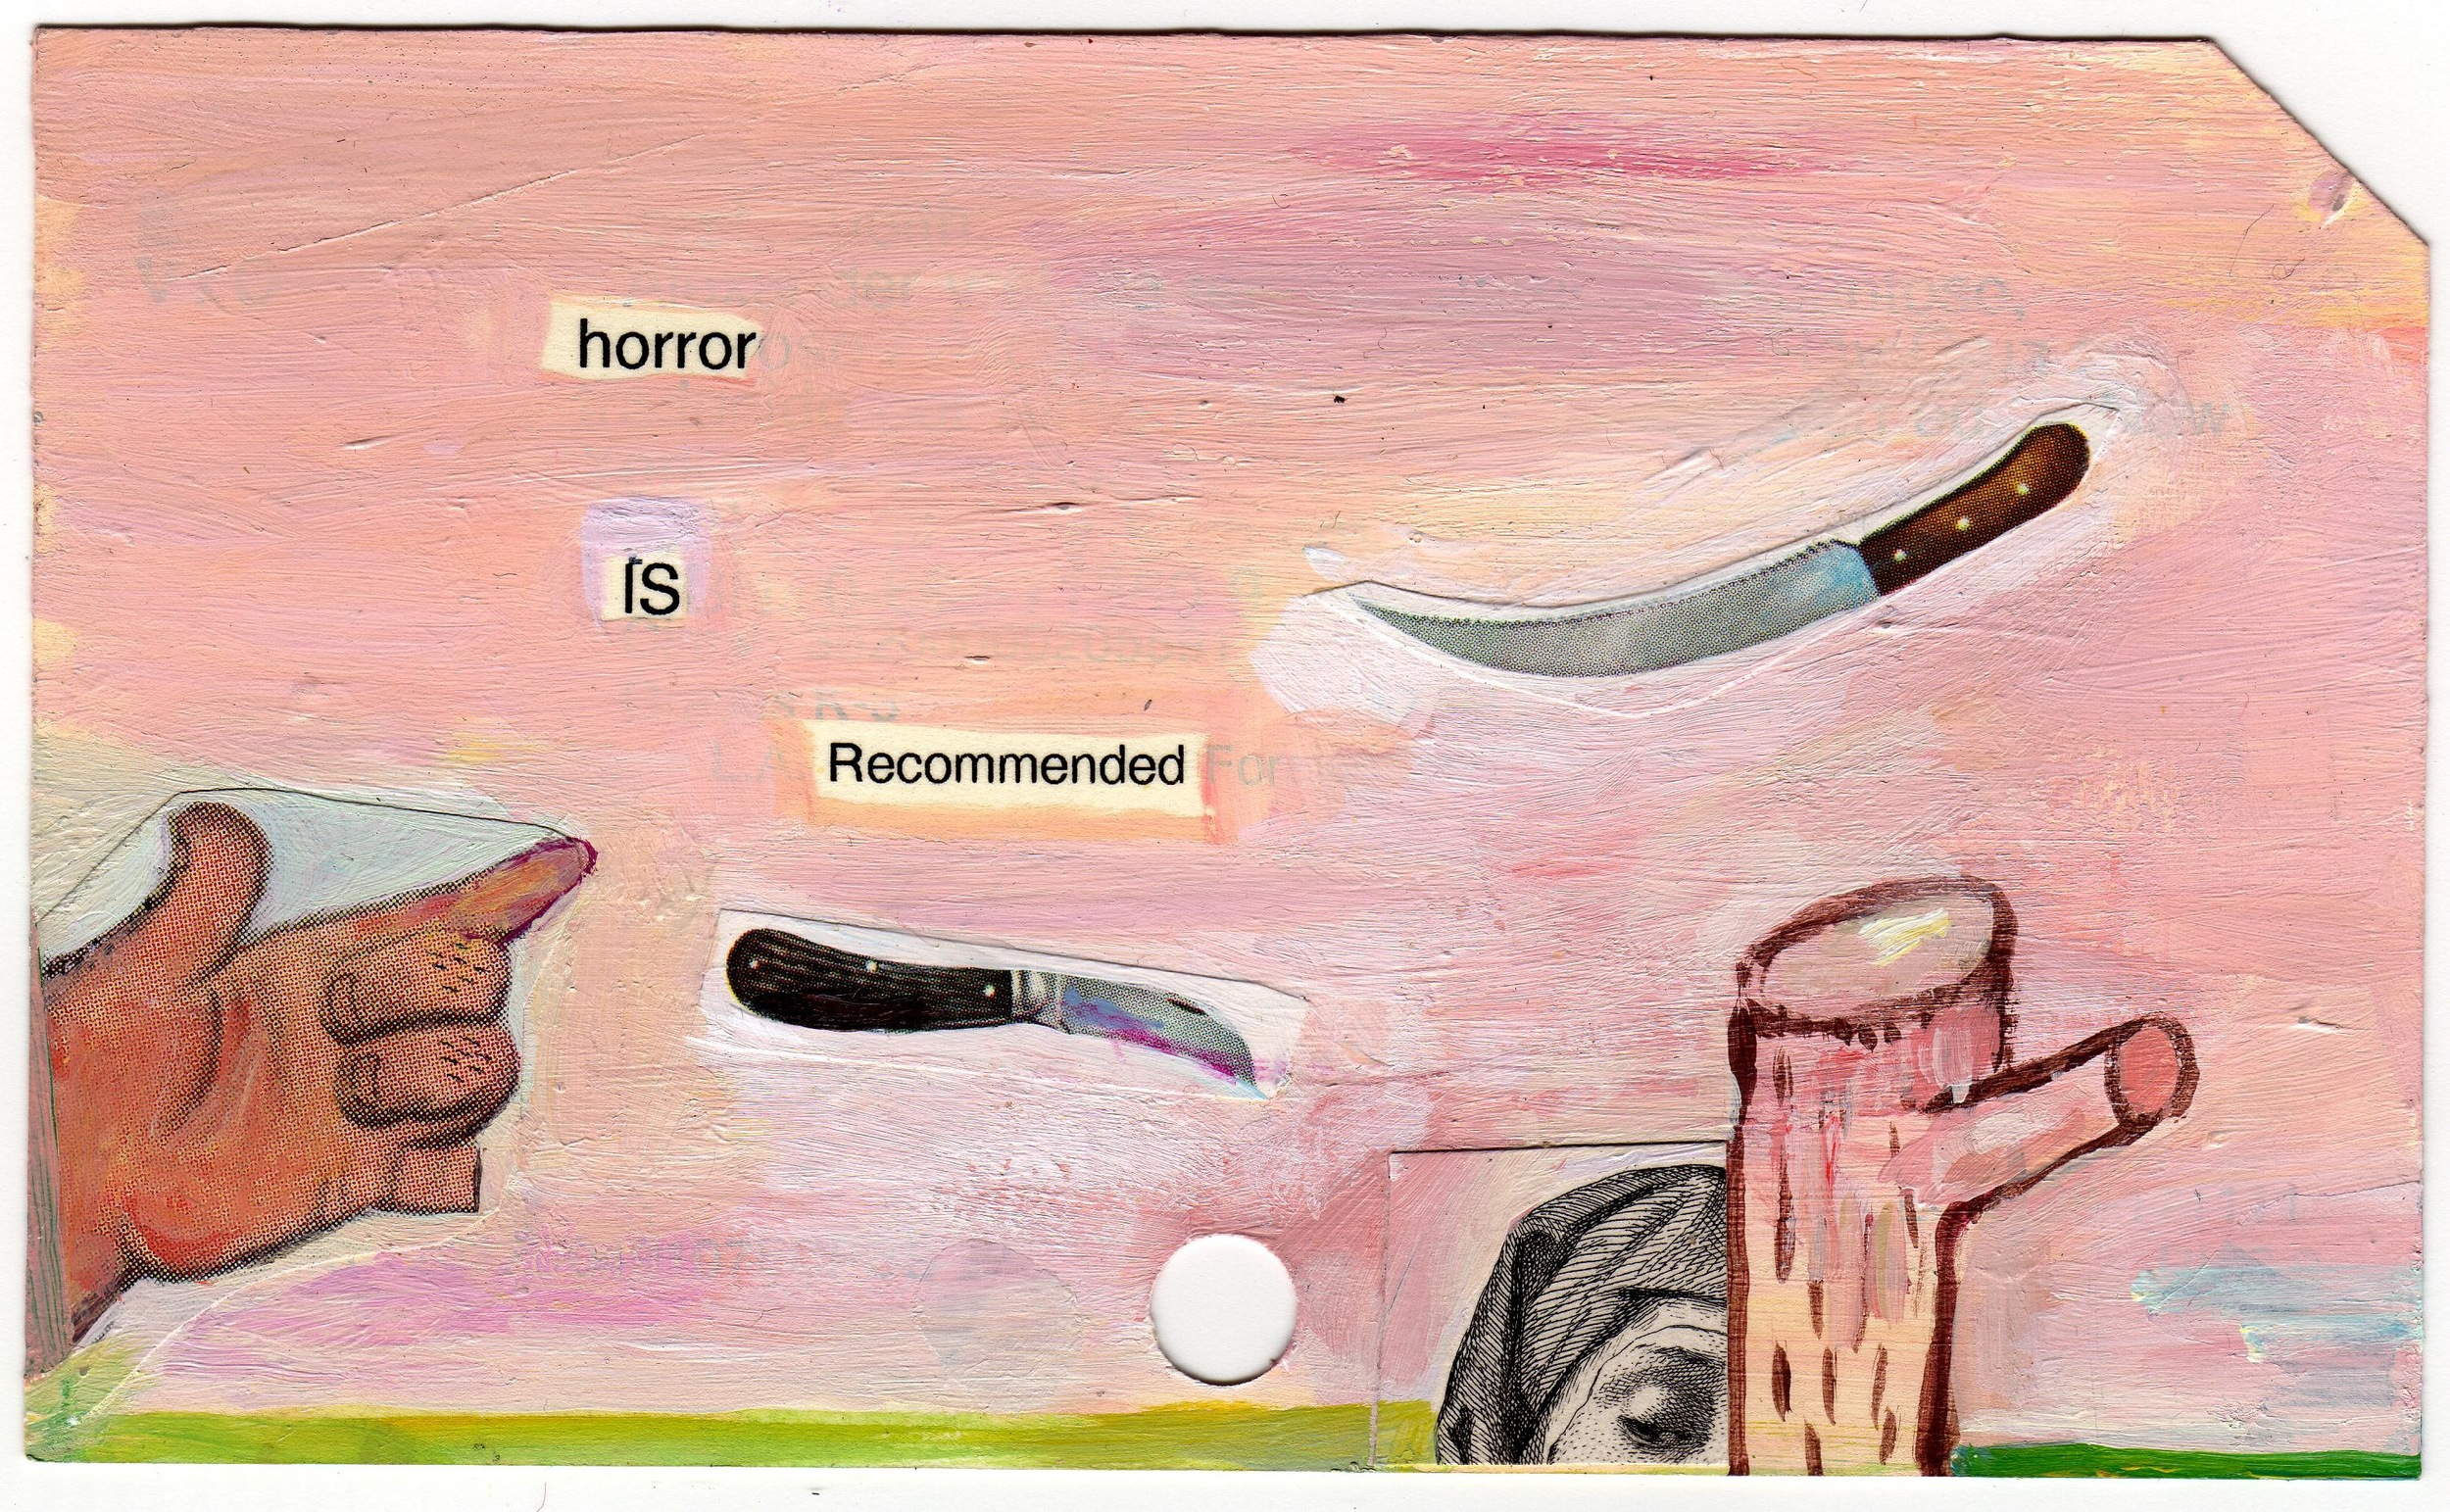 horror is recommended349.jpg